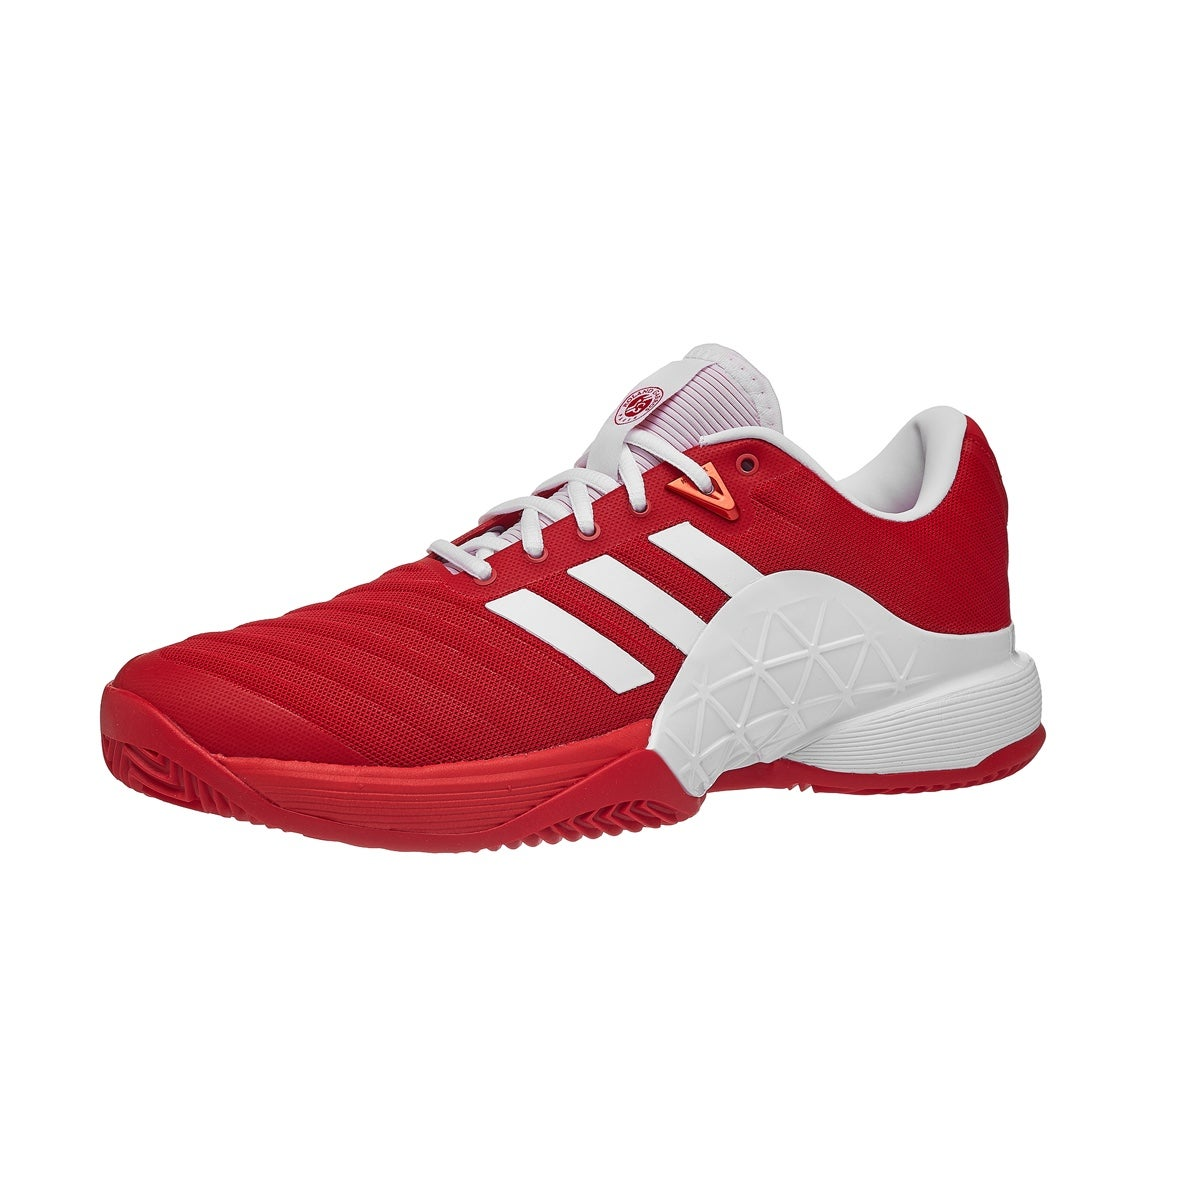 save off a36df 40c4d adidas Barricade 18 CLAY ScarletWhite Mens Shoe 360° View